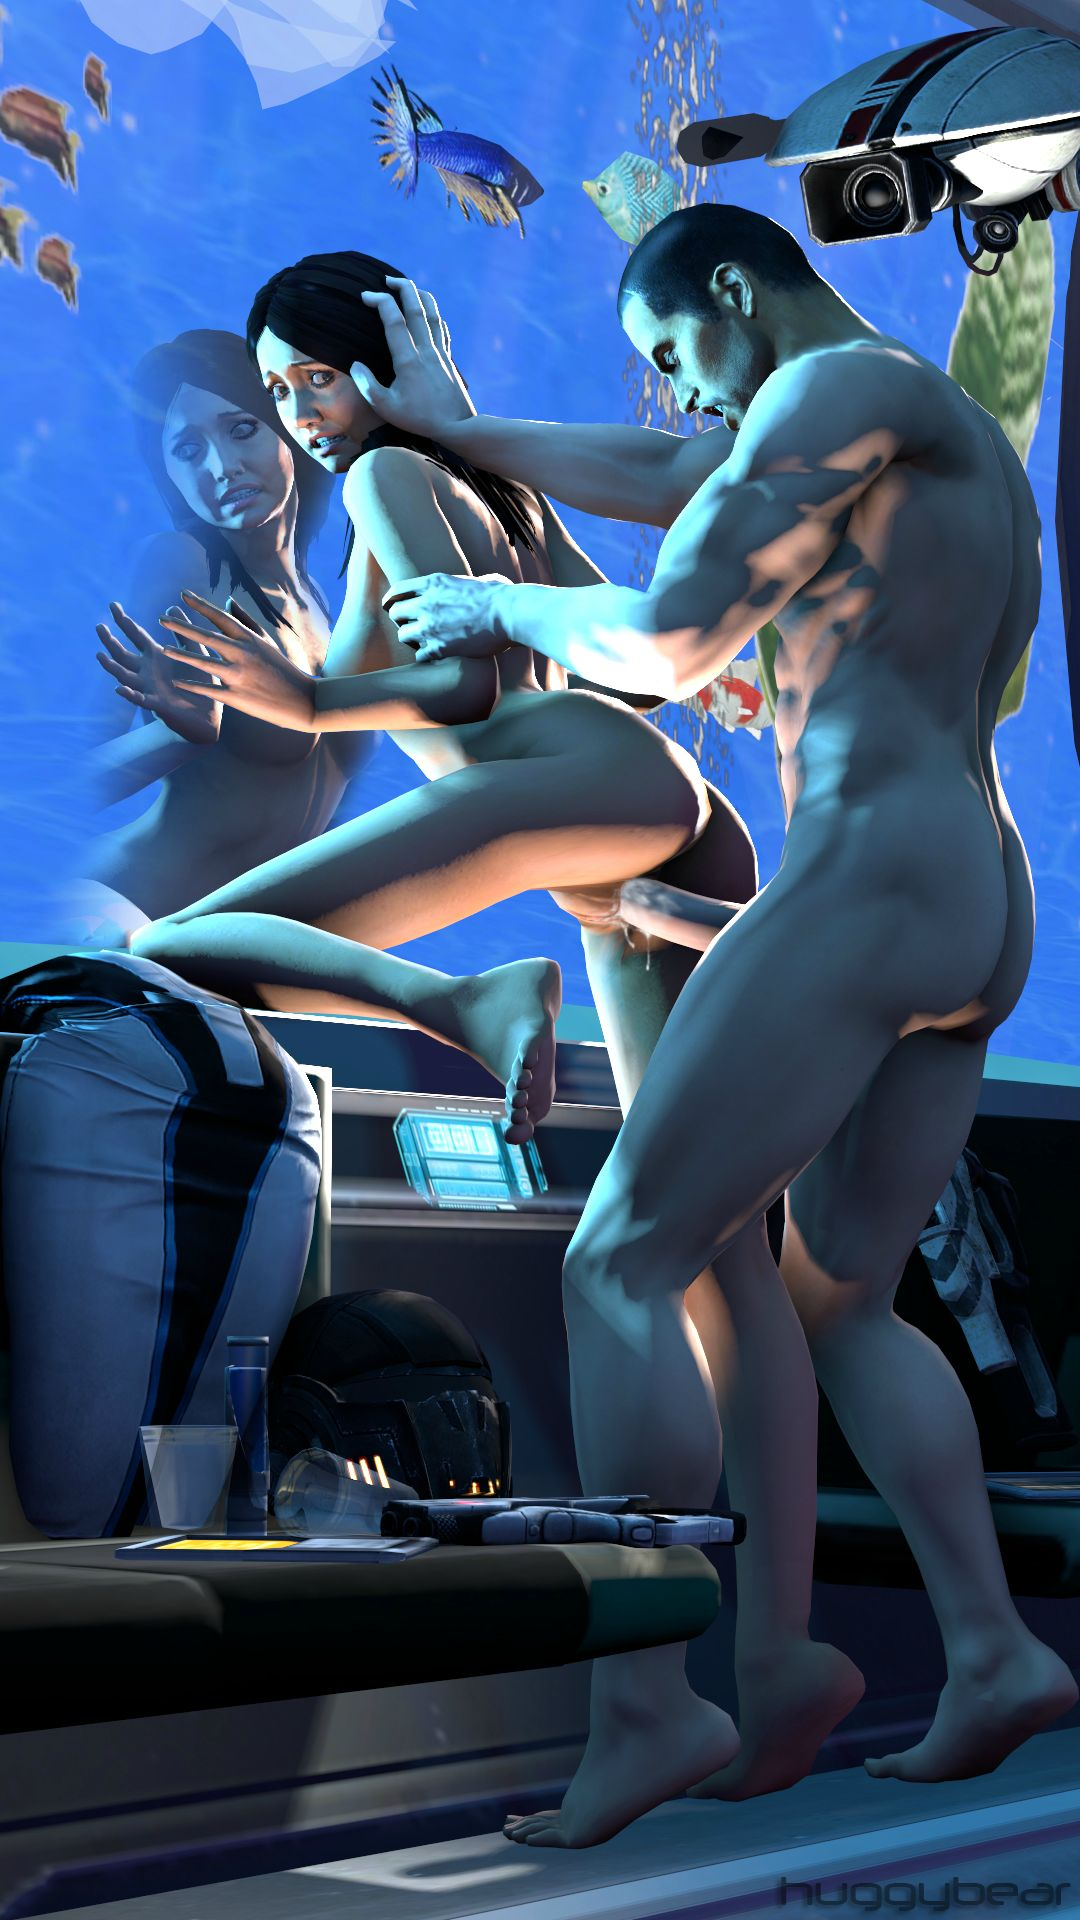 Mass effect 3 hentai sex pics pron movies